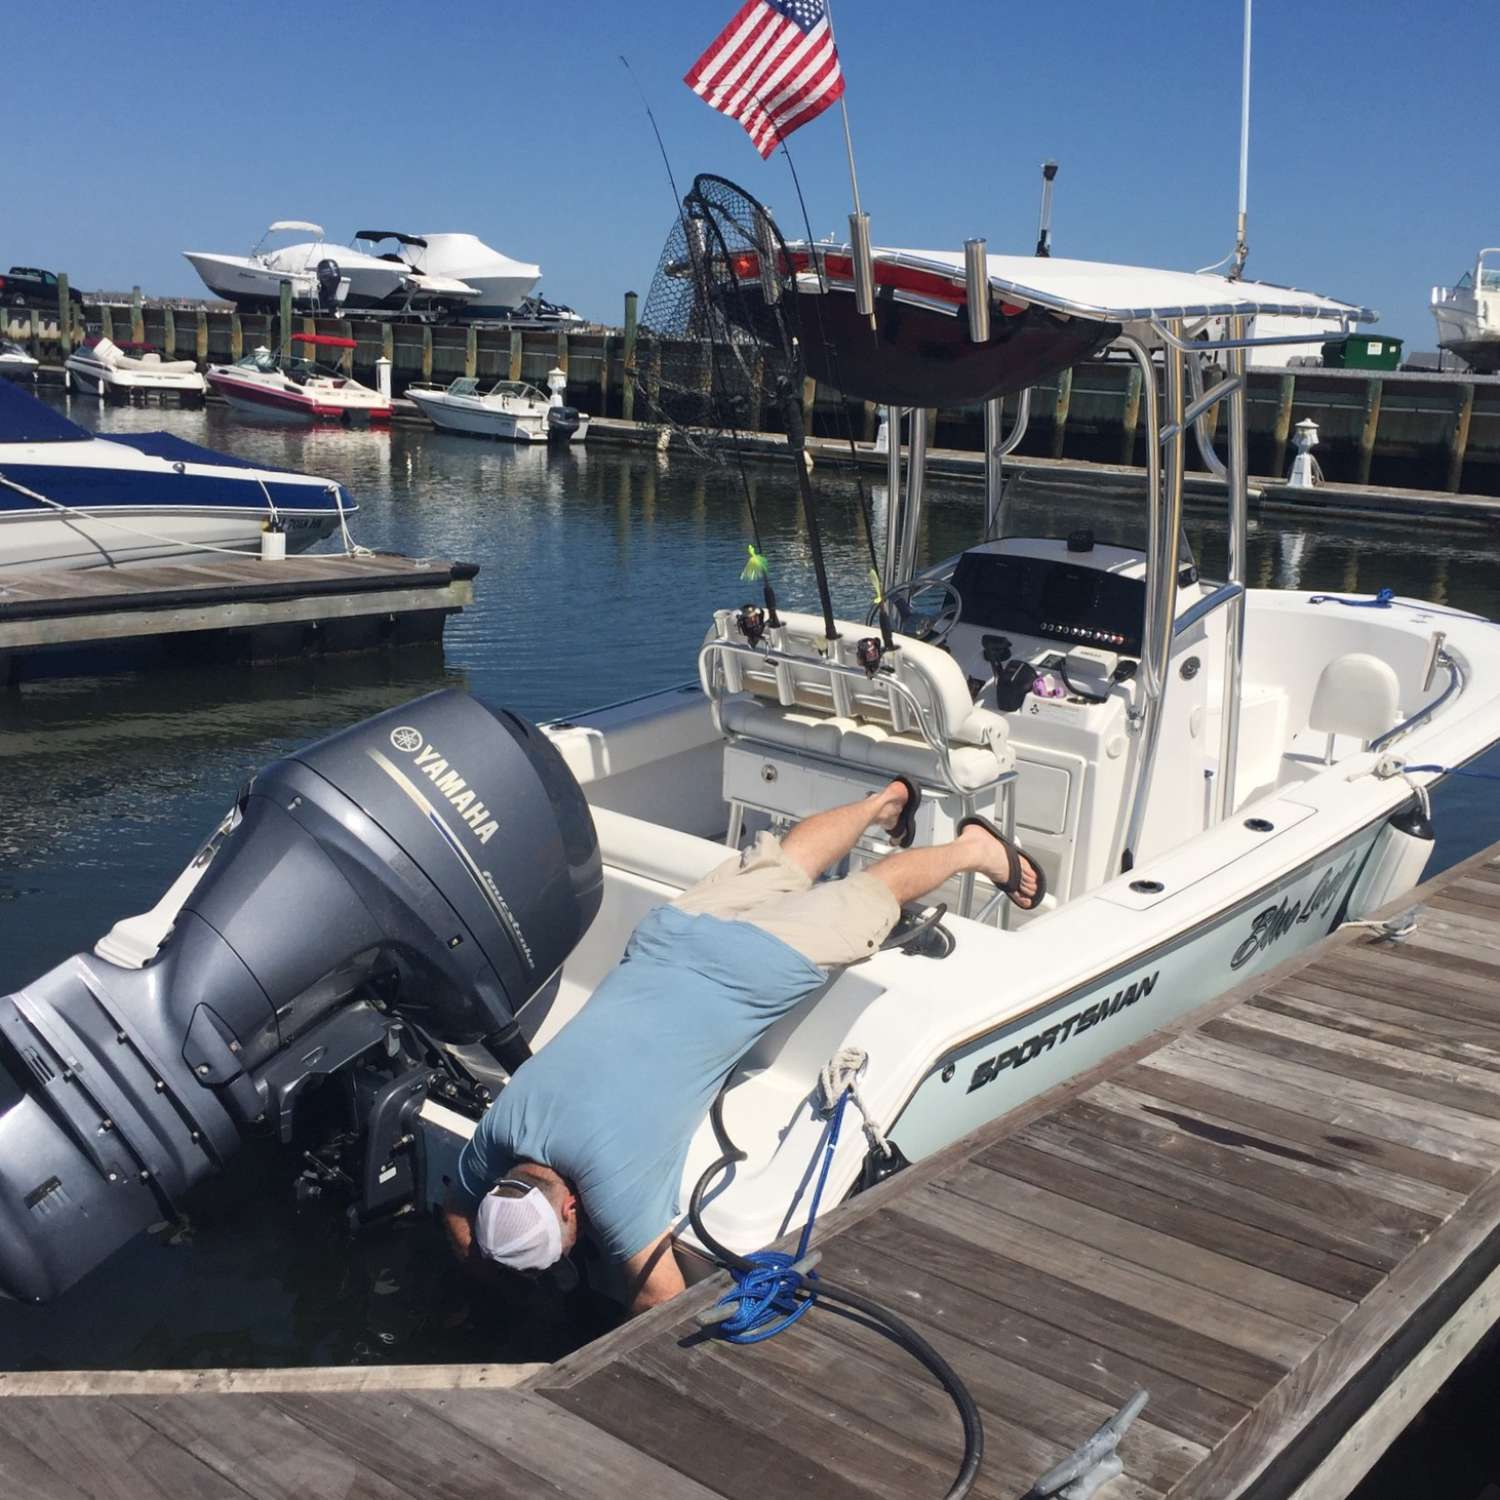 Title: Cleaning The Trim Tabs - On board their Sportsman Open 212 Center Console - Location: Estell Manor, New Jersey. Participating in the Photo Contest #SportsmanAugust2017